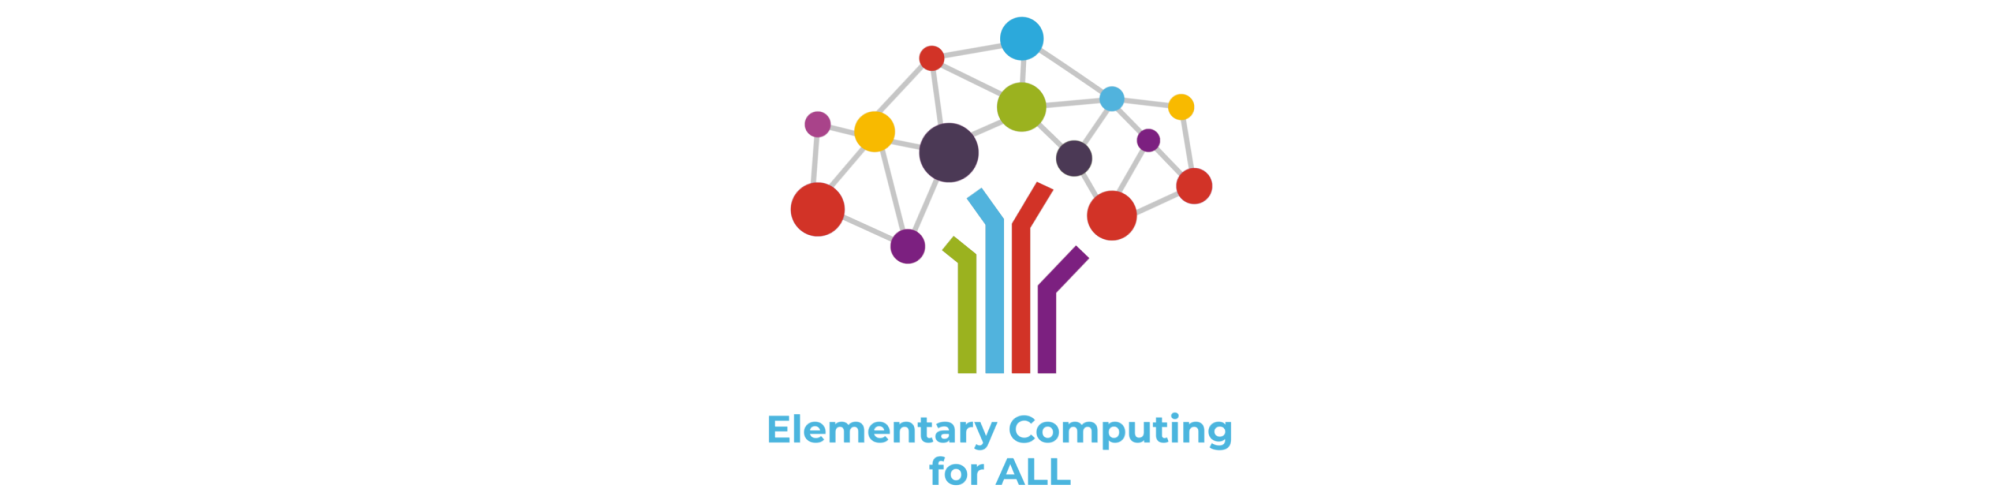 Elementary Computing For All